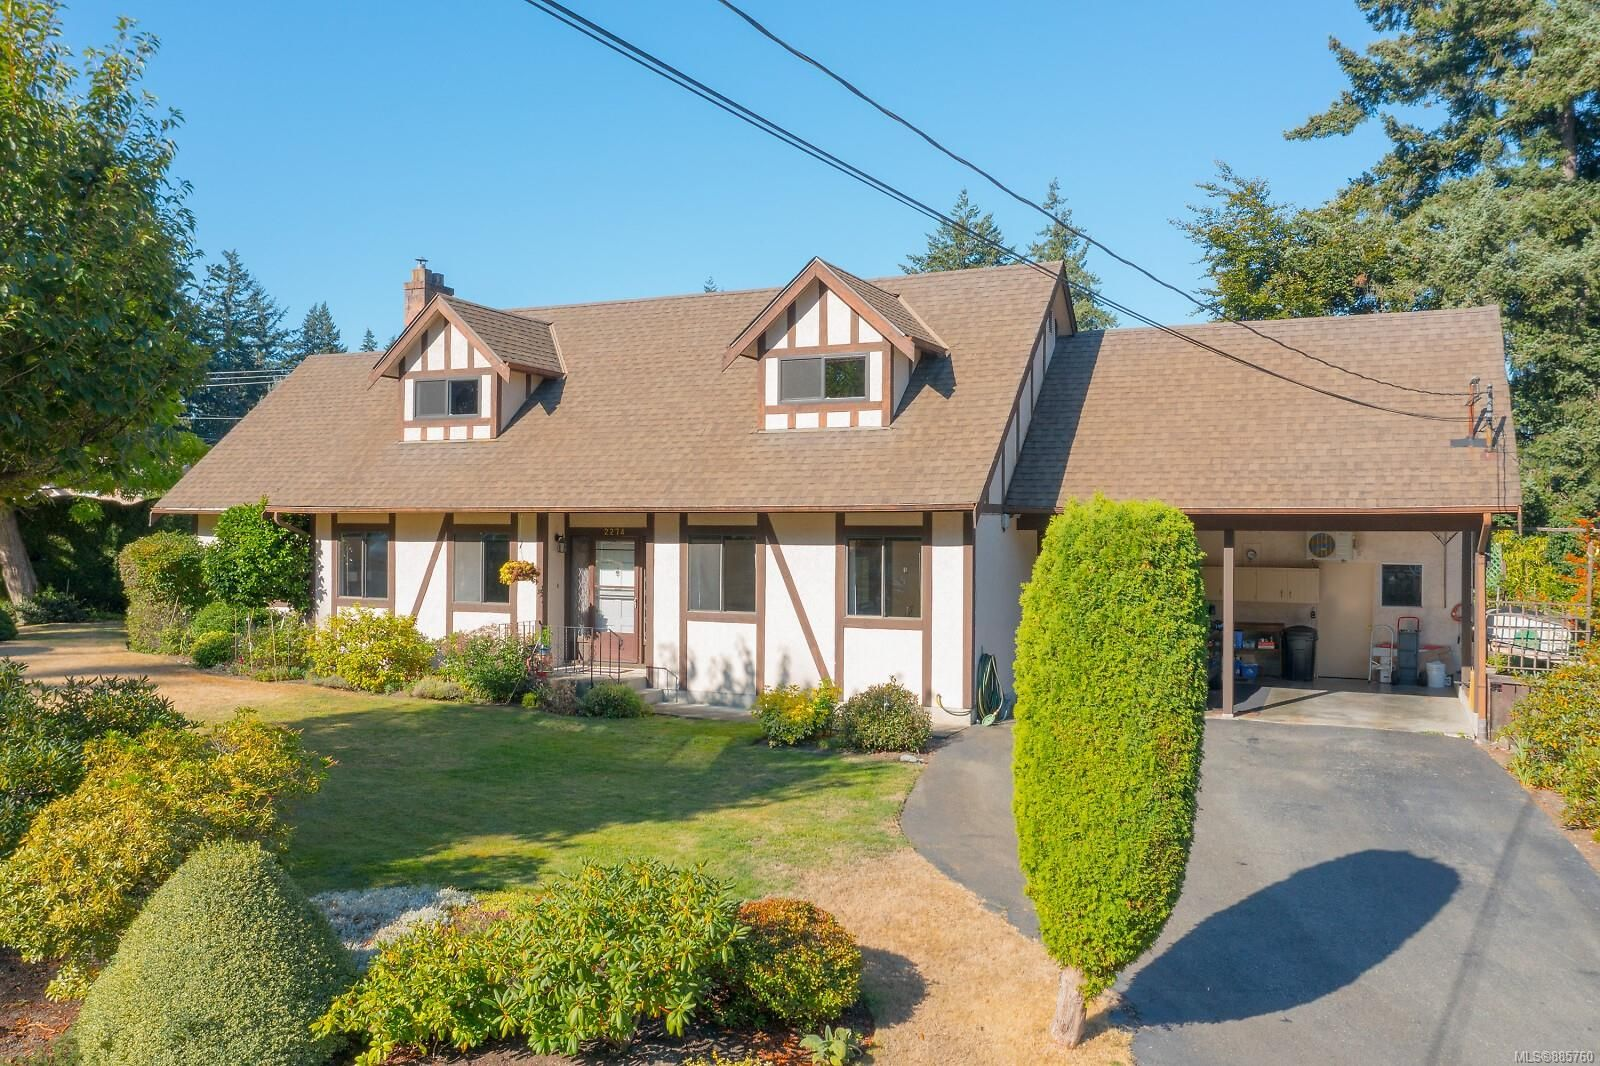 Main Photo: 2274 Alicia Pl in : Co Colwood Lake House for sale (Colwood)  : MLS®# 885760